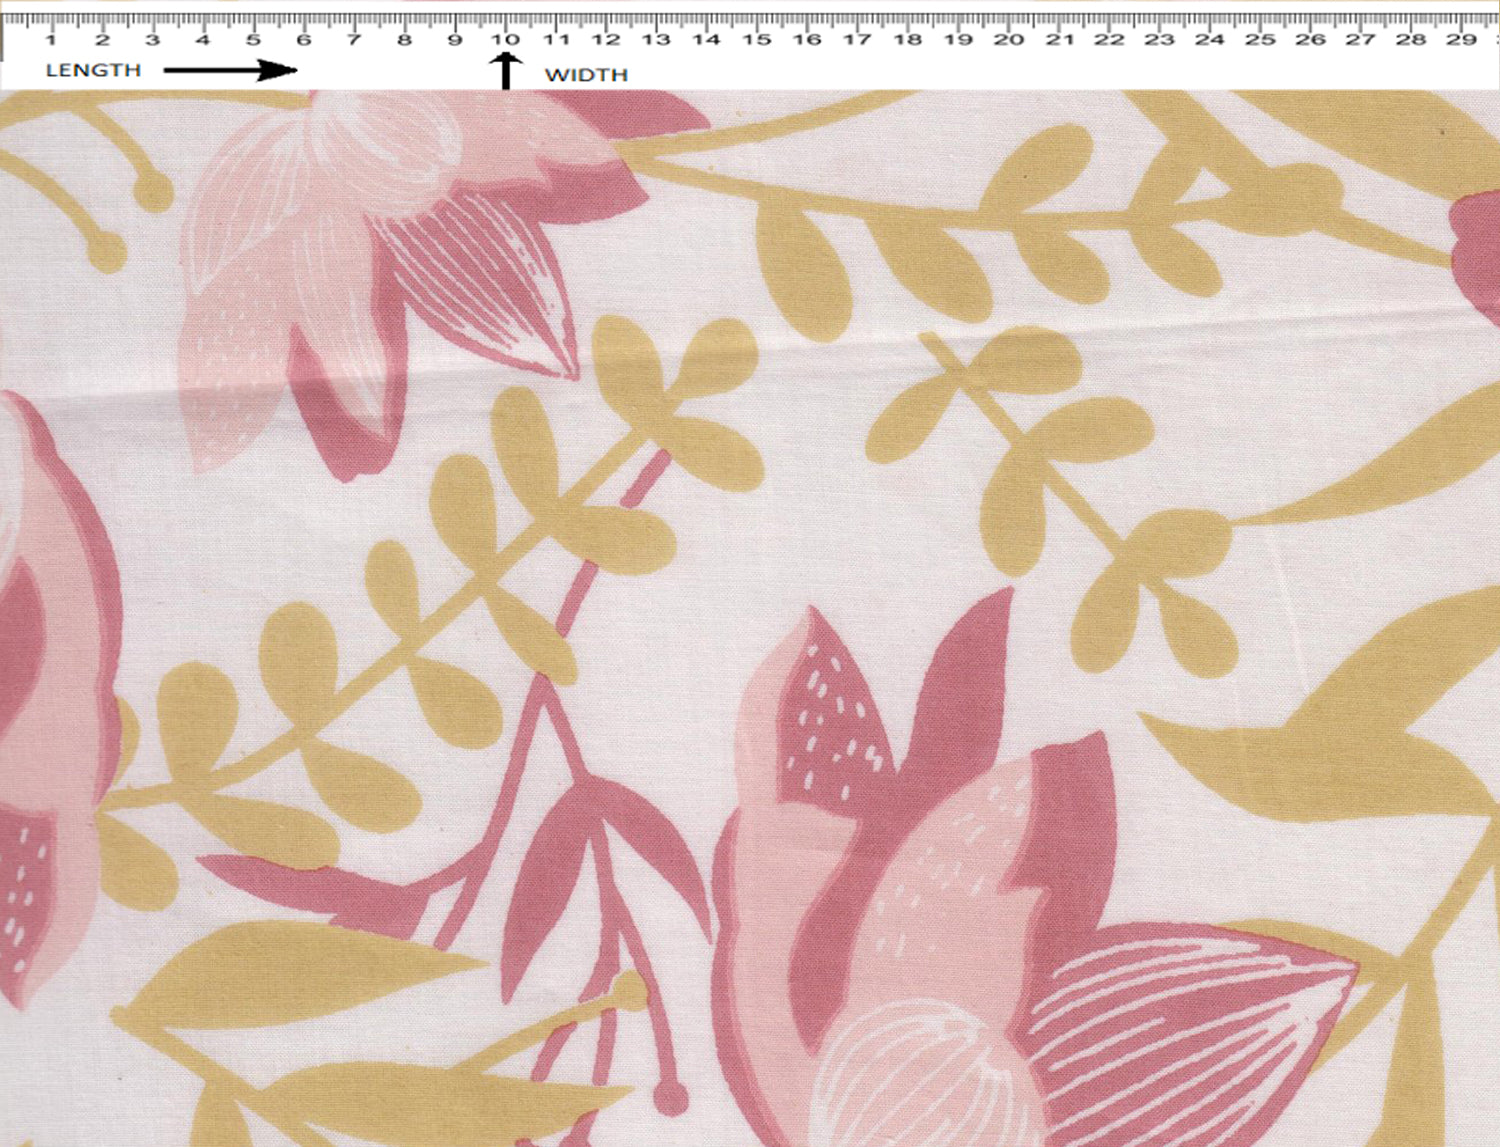 LILY PRINT {SUN WHITE-PALE CELERY-BEETLE PINK-CHERRY PINK}  (Cambric)